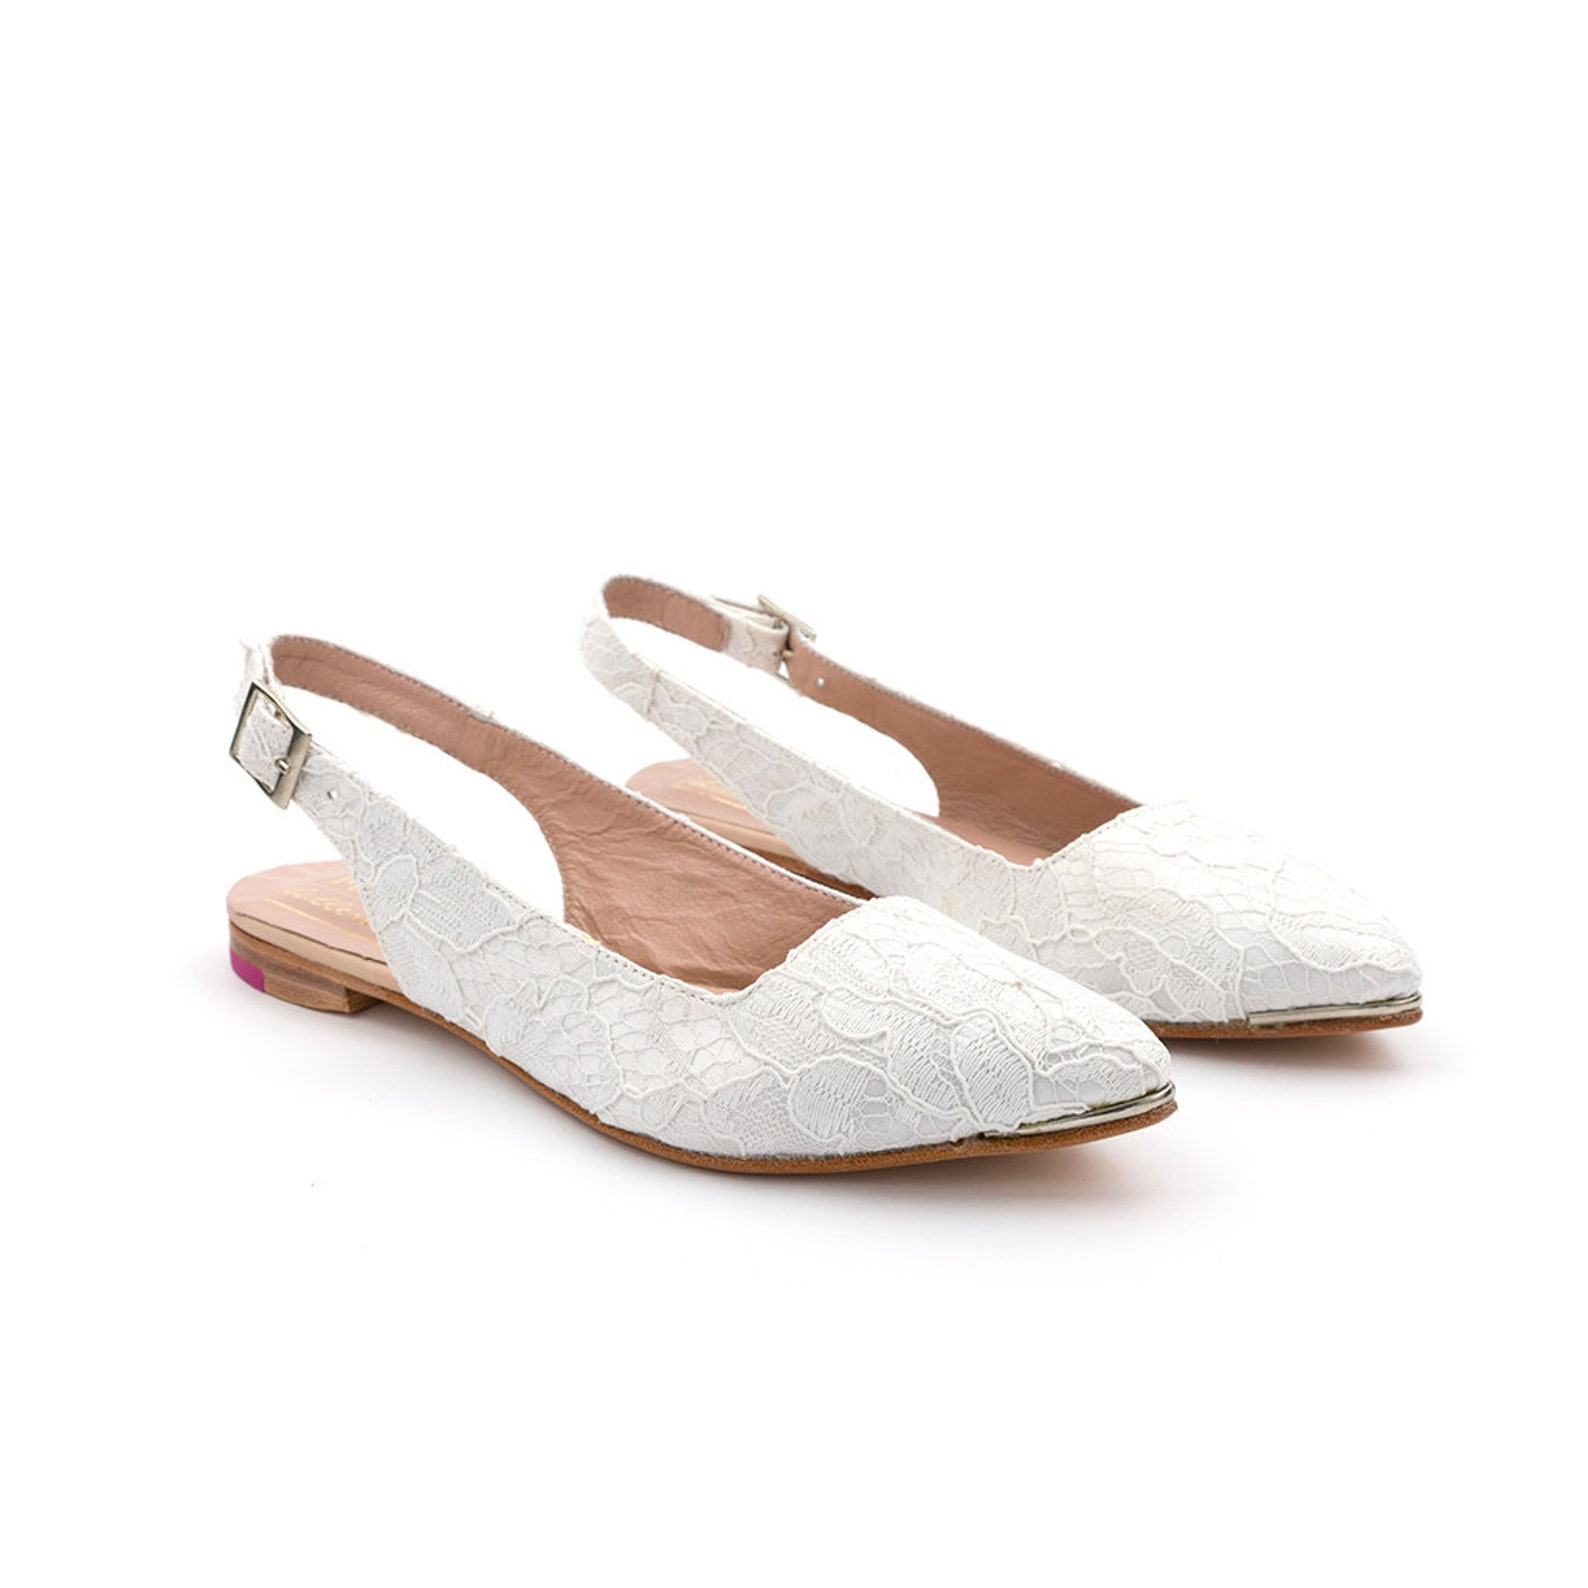 bridal ballet flats | wedding shoes with lace | leather bridal flats | white | ready to ship